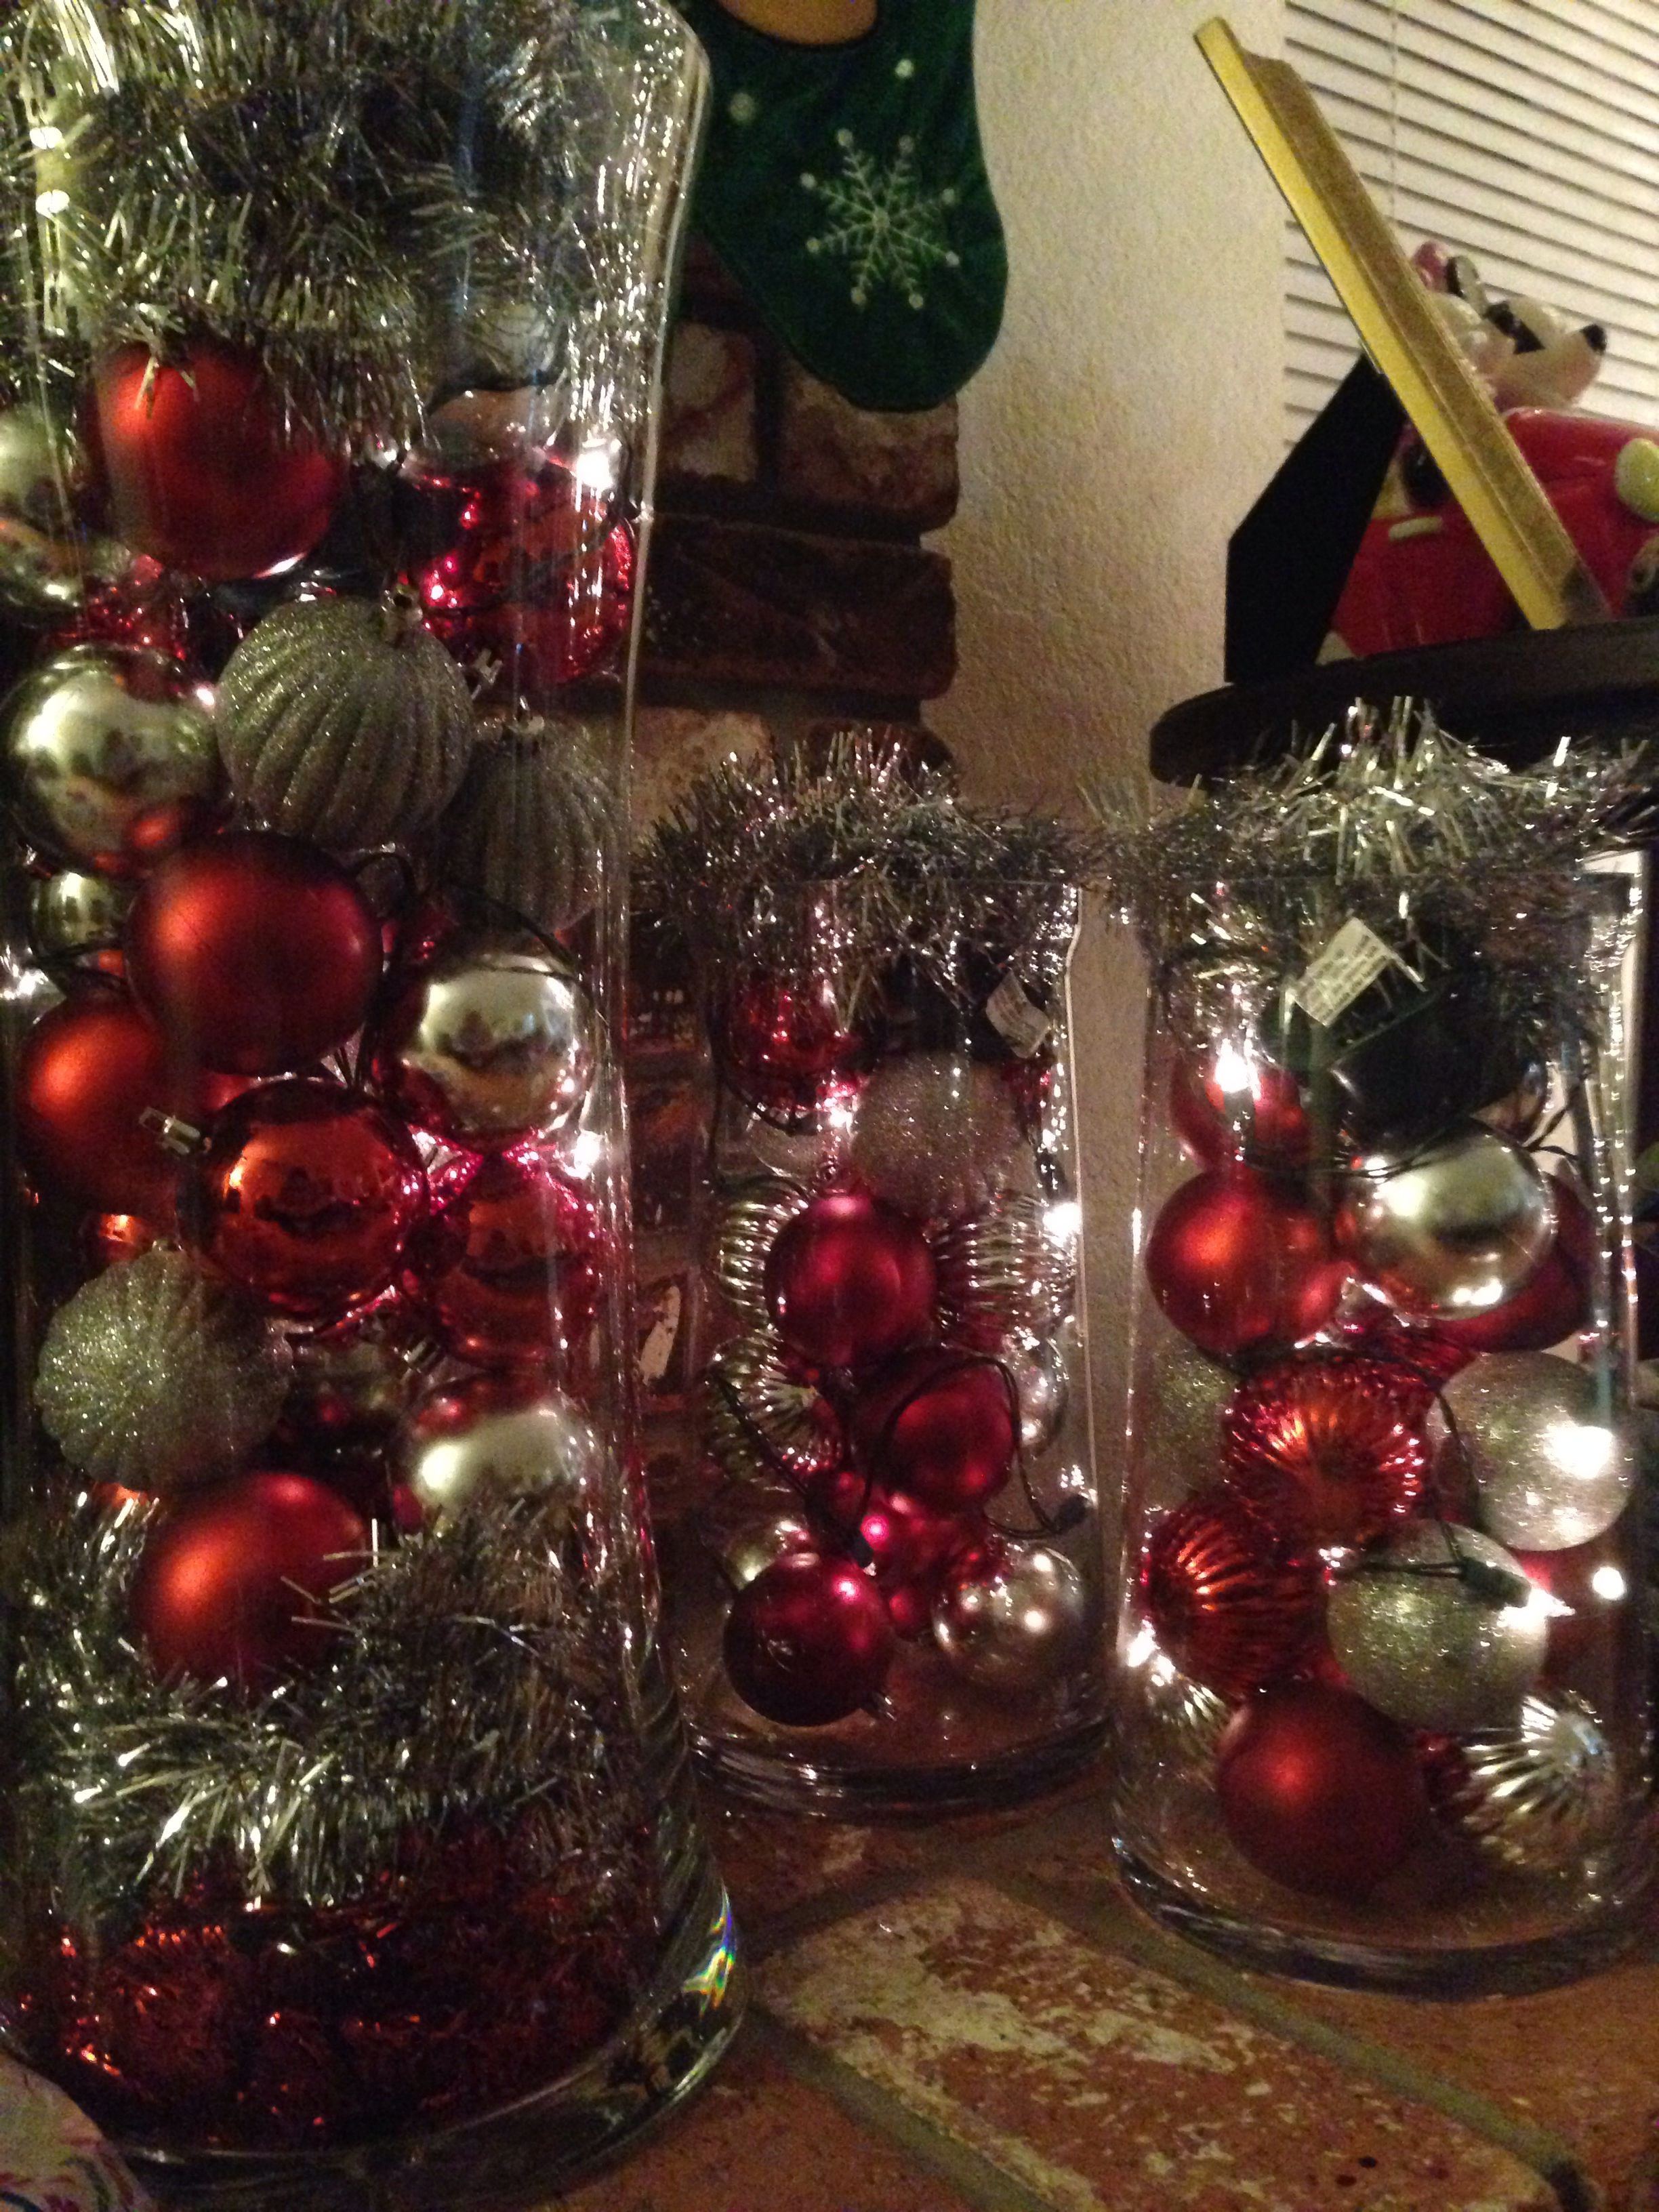 My Home Christmas Decor Glass Vases Ornaments From The Dollar Store And Battery Operated Lights Christmas Decorations Christmas Holiday Decor